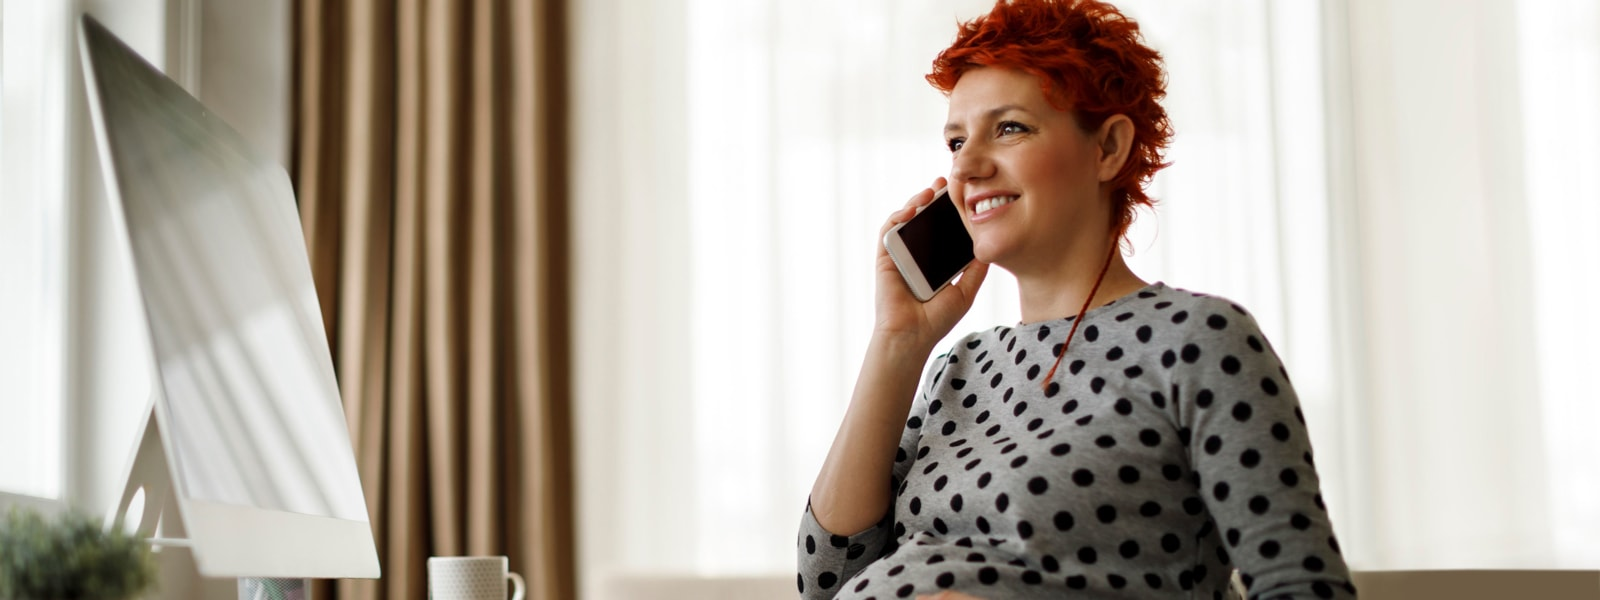 A pregnant woman talking on her smartphone